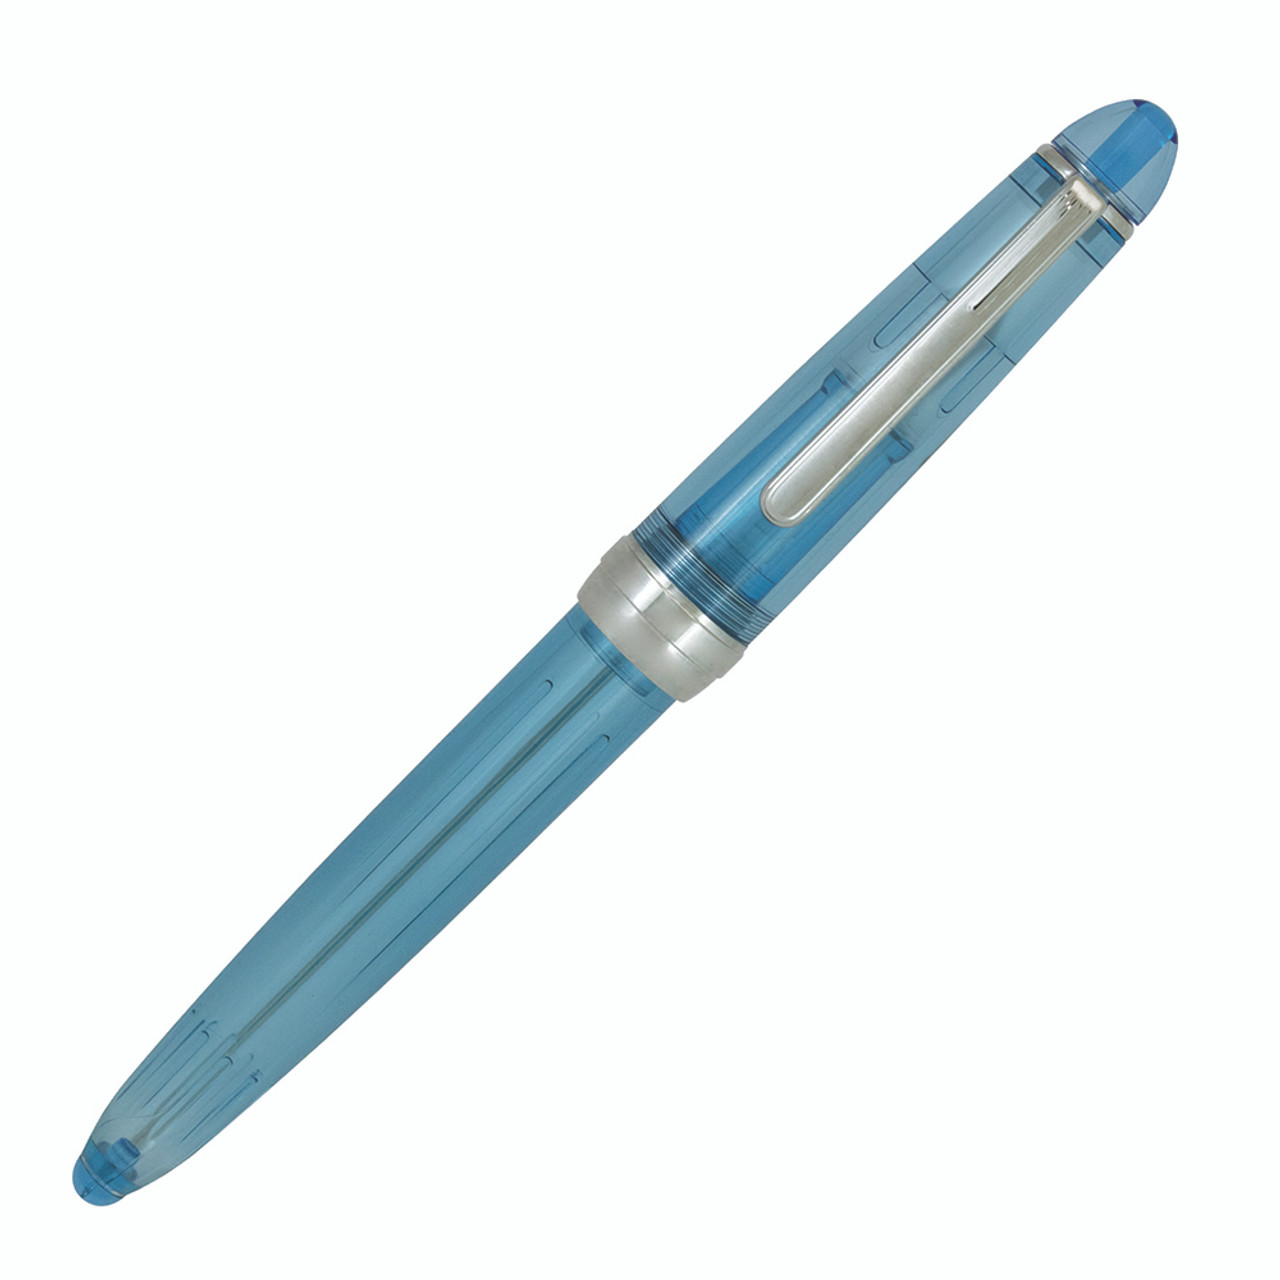 Monteverde Monza fountain pen - closed